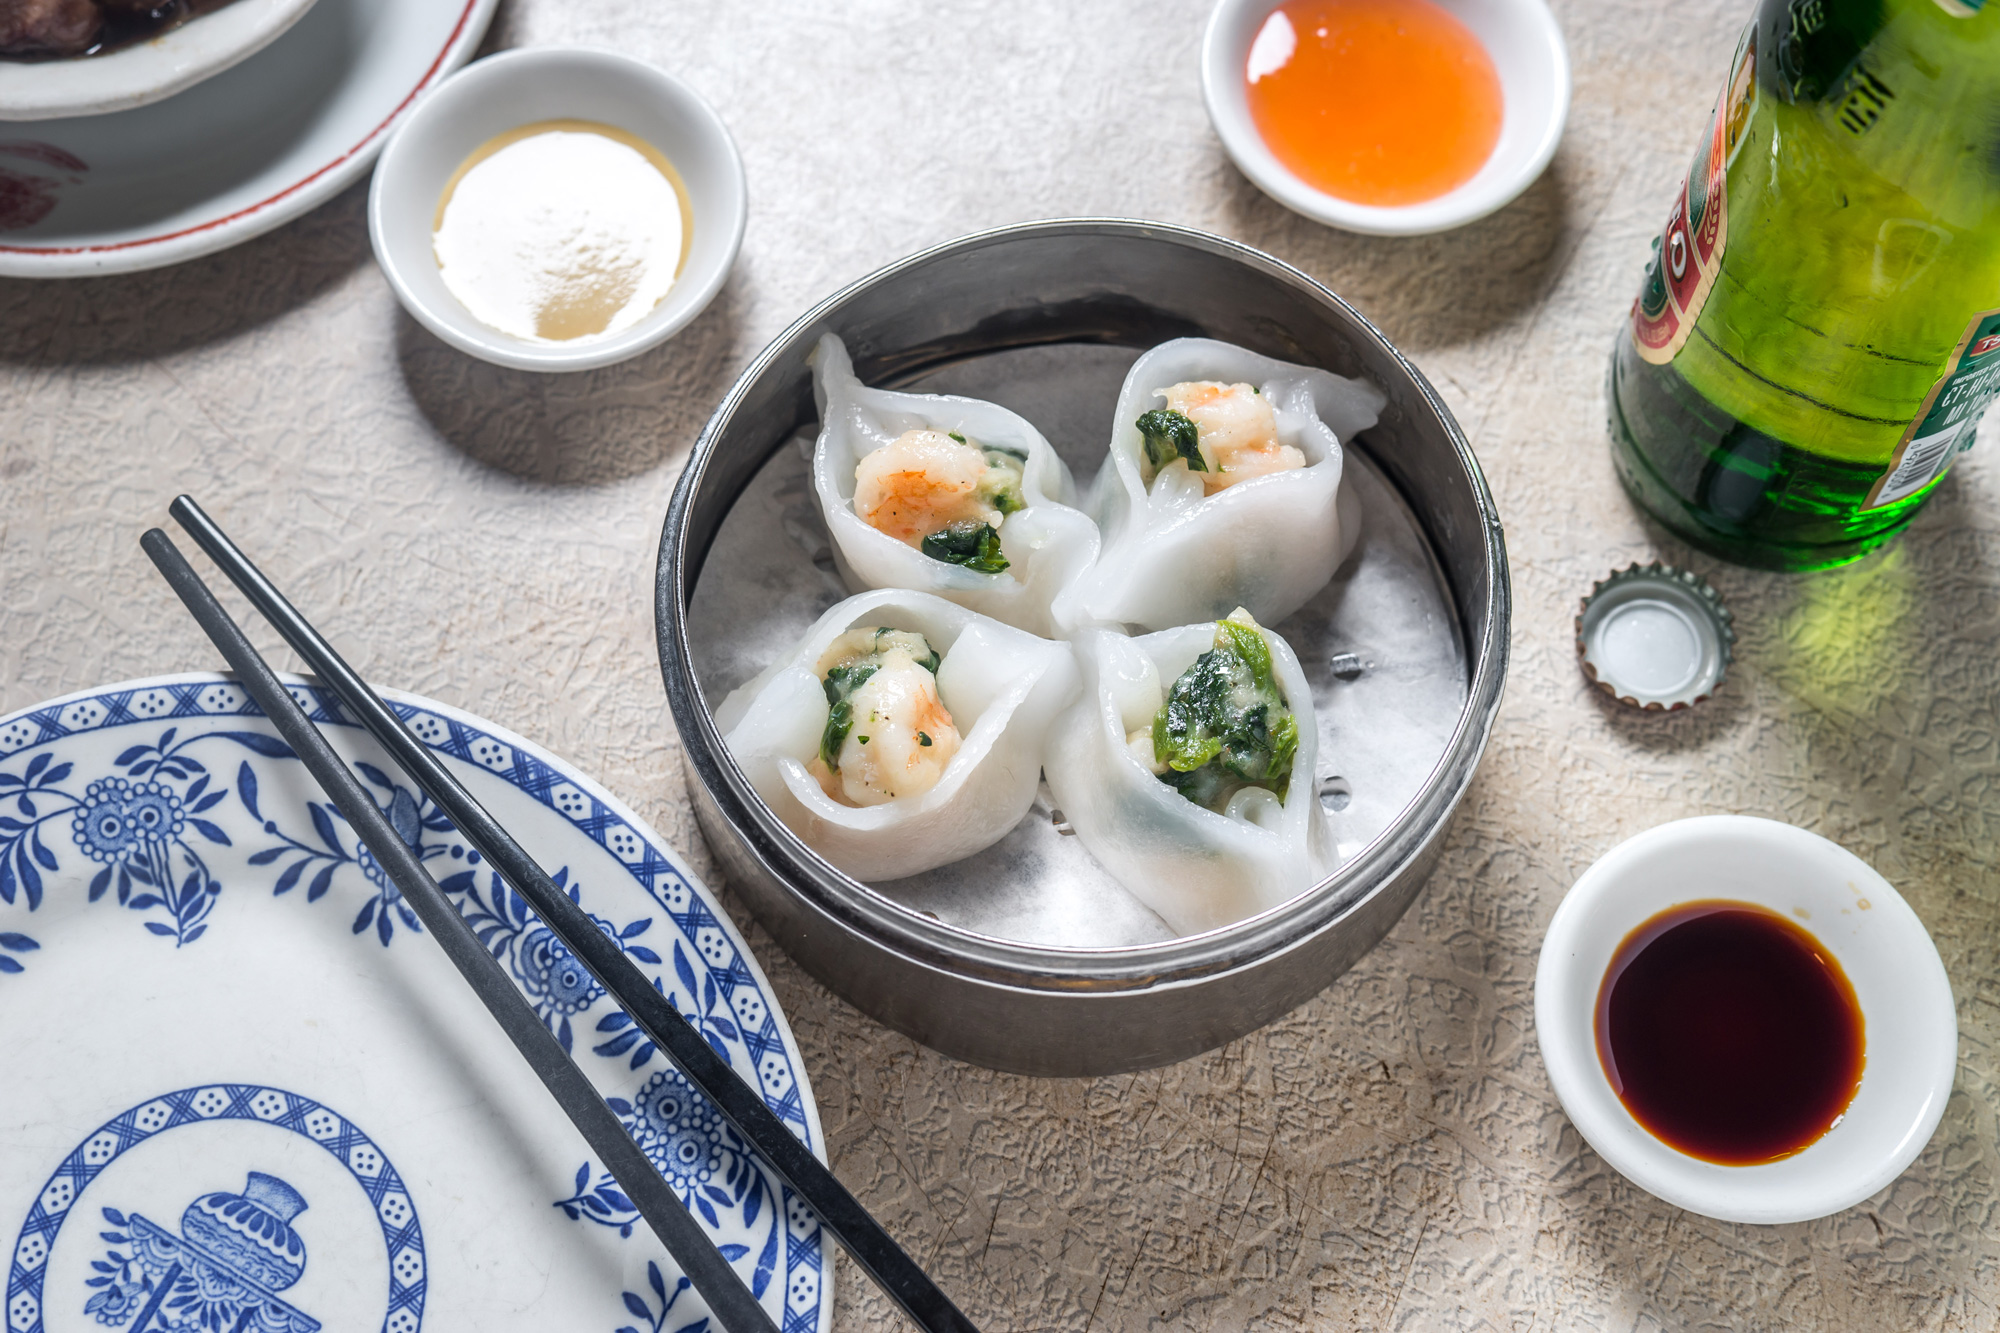 Nom Wah: serving dim sum and dumplings since 1920